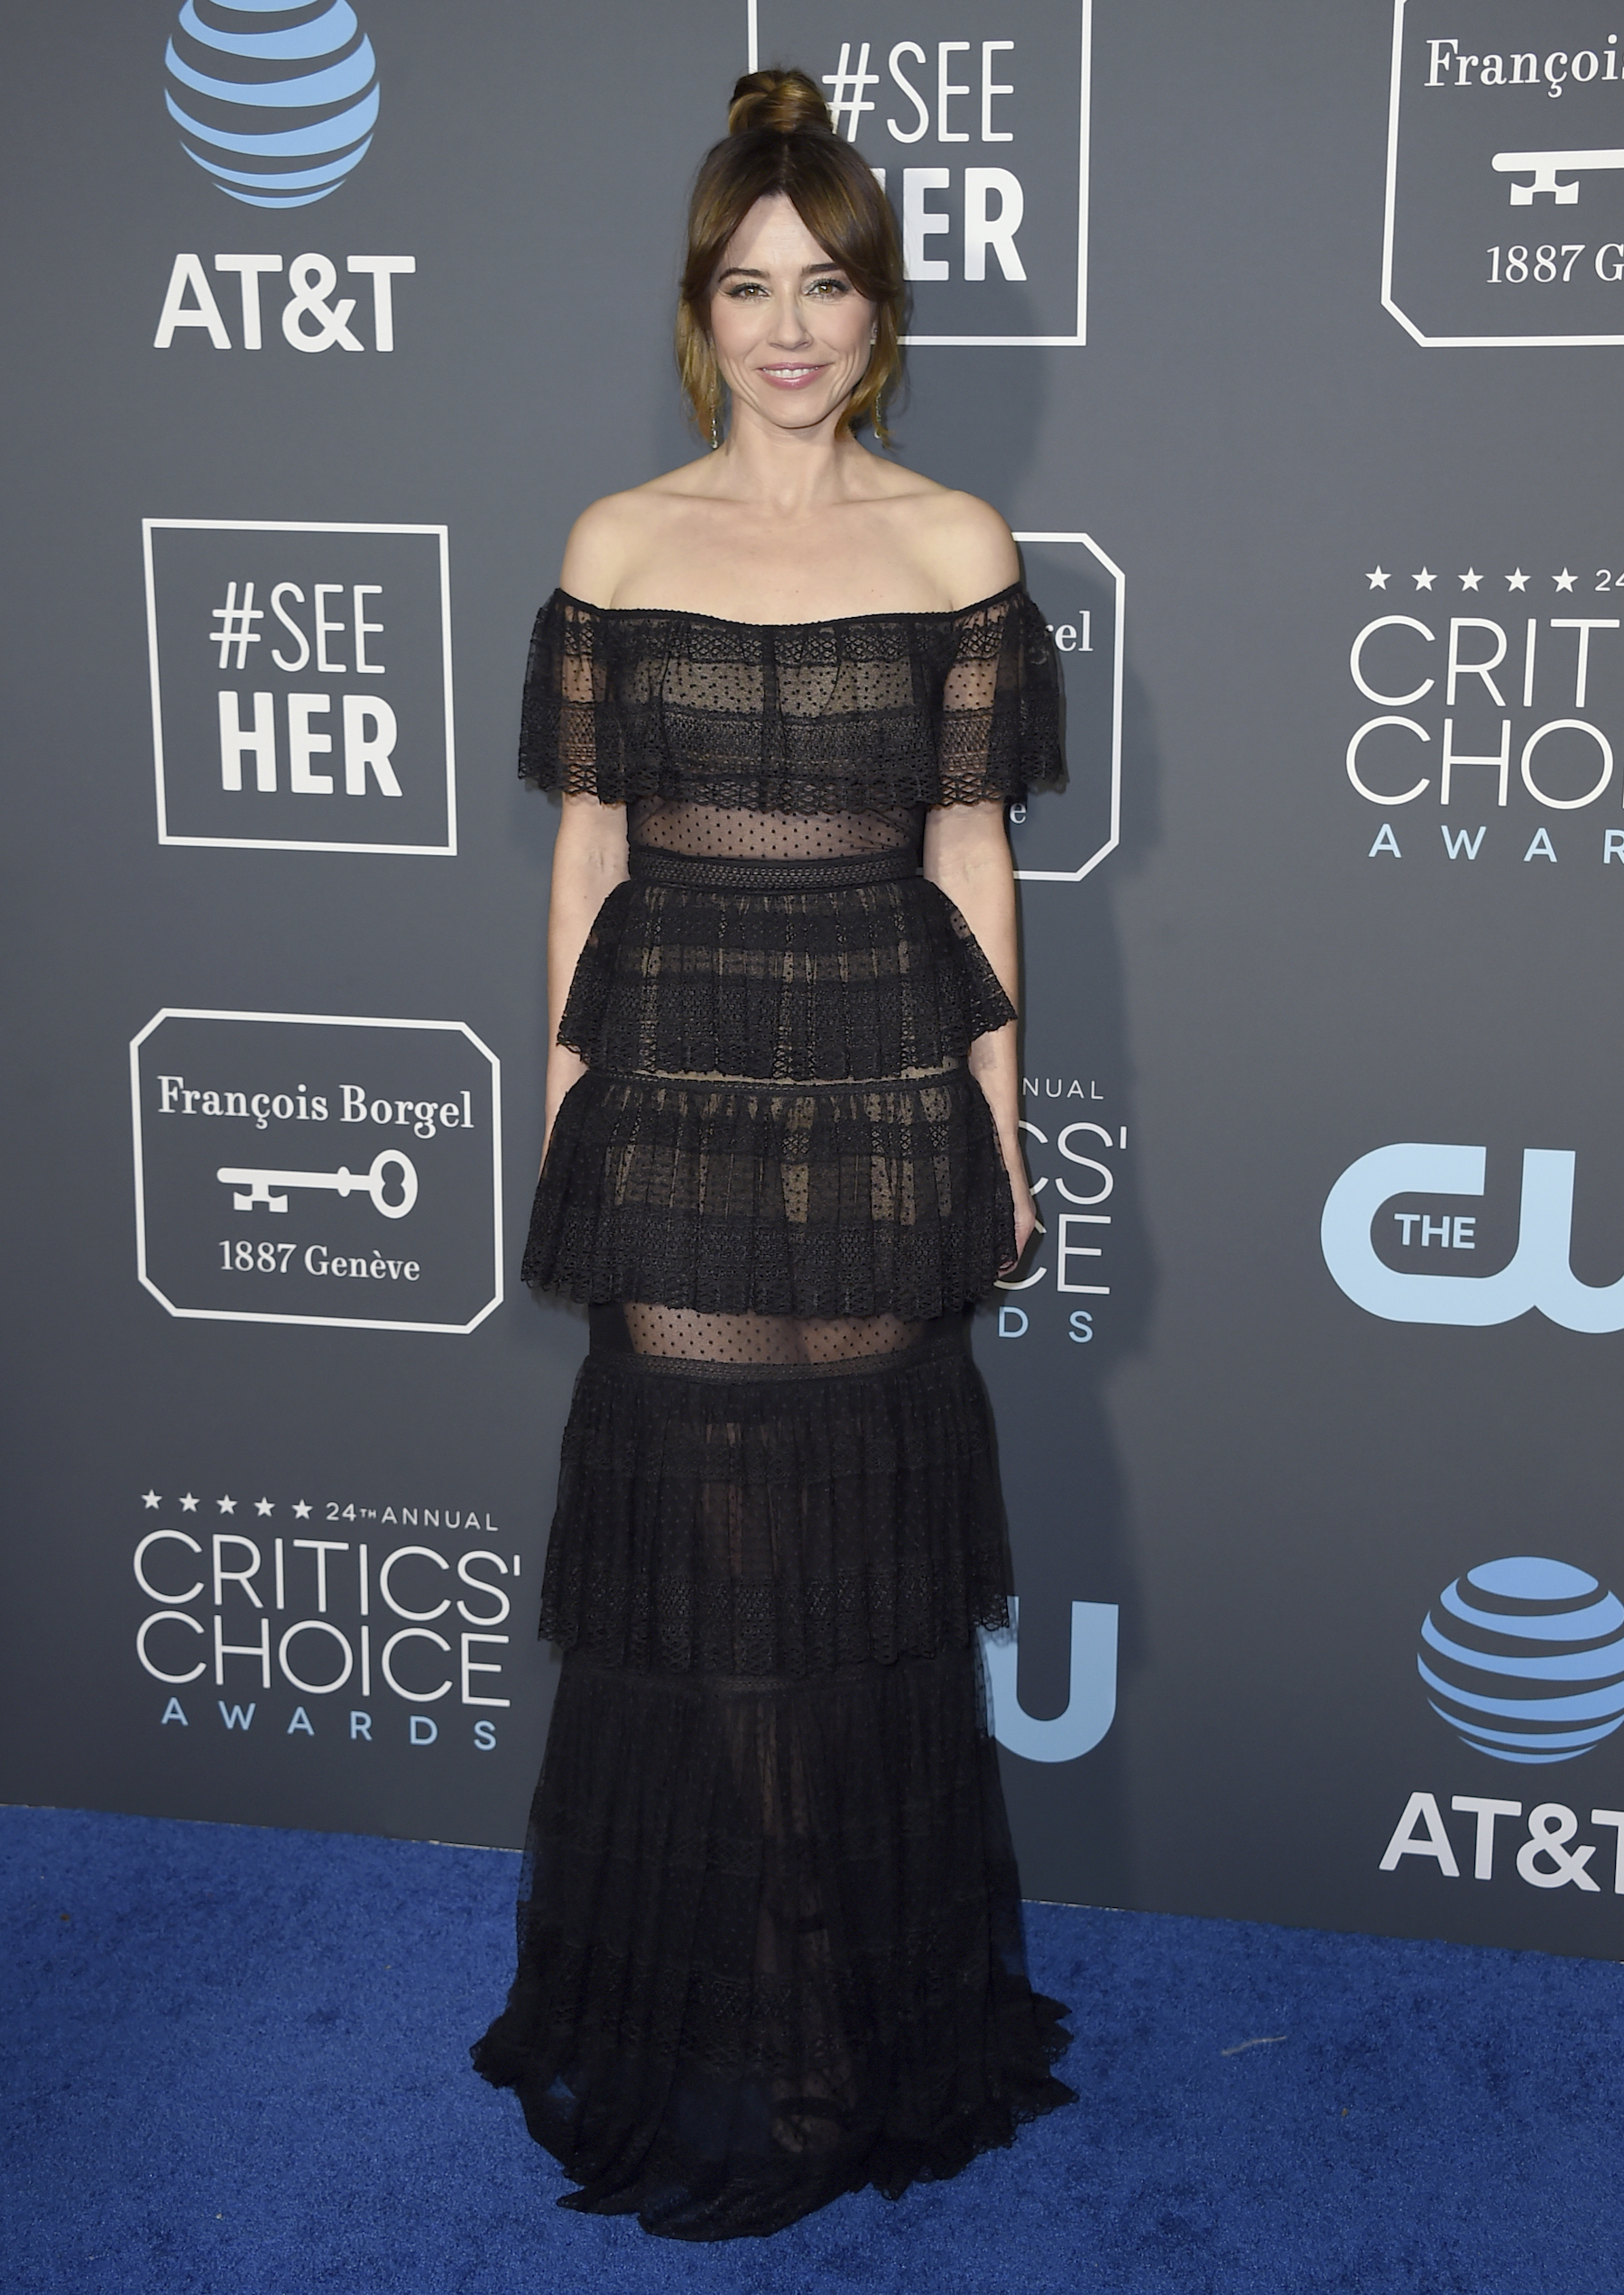 <div class='meta'><div class='origin-logo' data-origin='AP'></div><span class='caption-text' data-credit='Jordan Strauss/Invision/AP'>Linda Cardellini arrives at the 24th annual Critics' Choice Awards on Sunday, Jan. 13, 2019, at the Barker Hangar in Santa Monica, Calif.</span></div>